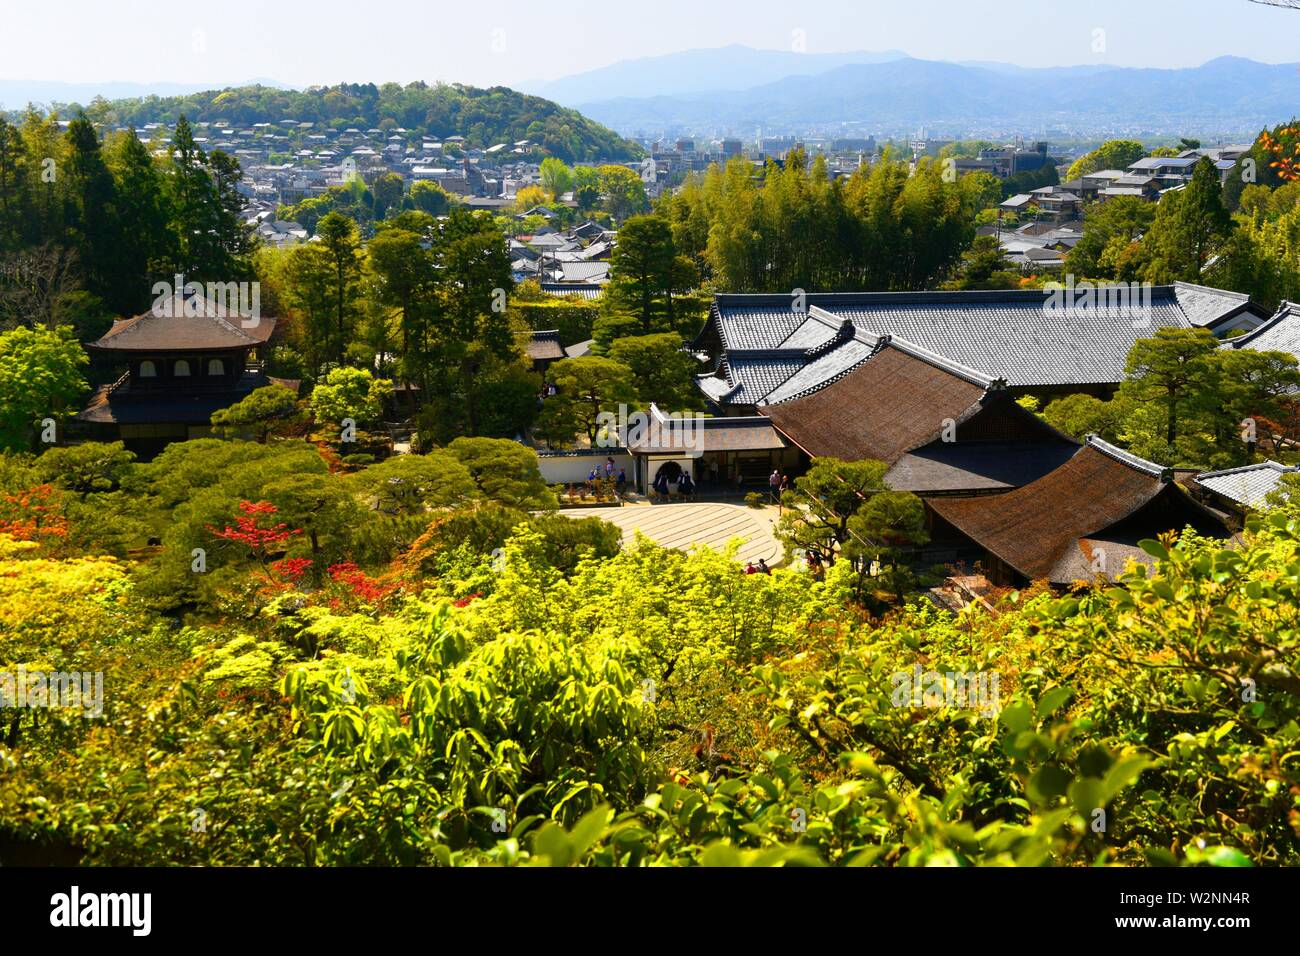 Ginkaku-ji temple or Silver Pavilion in Kyoto city, Honshu, Japan, Asia. Stock Photo